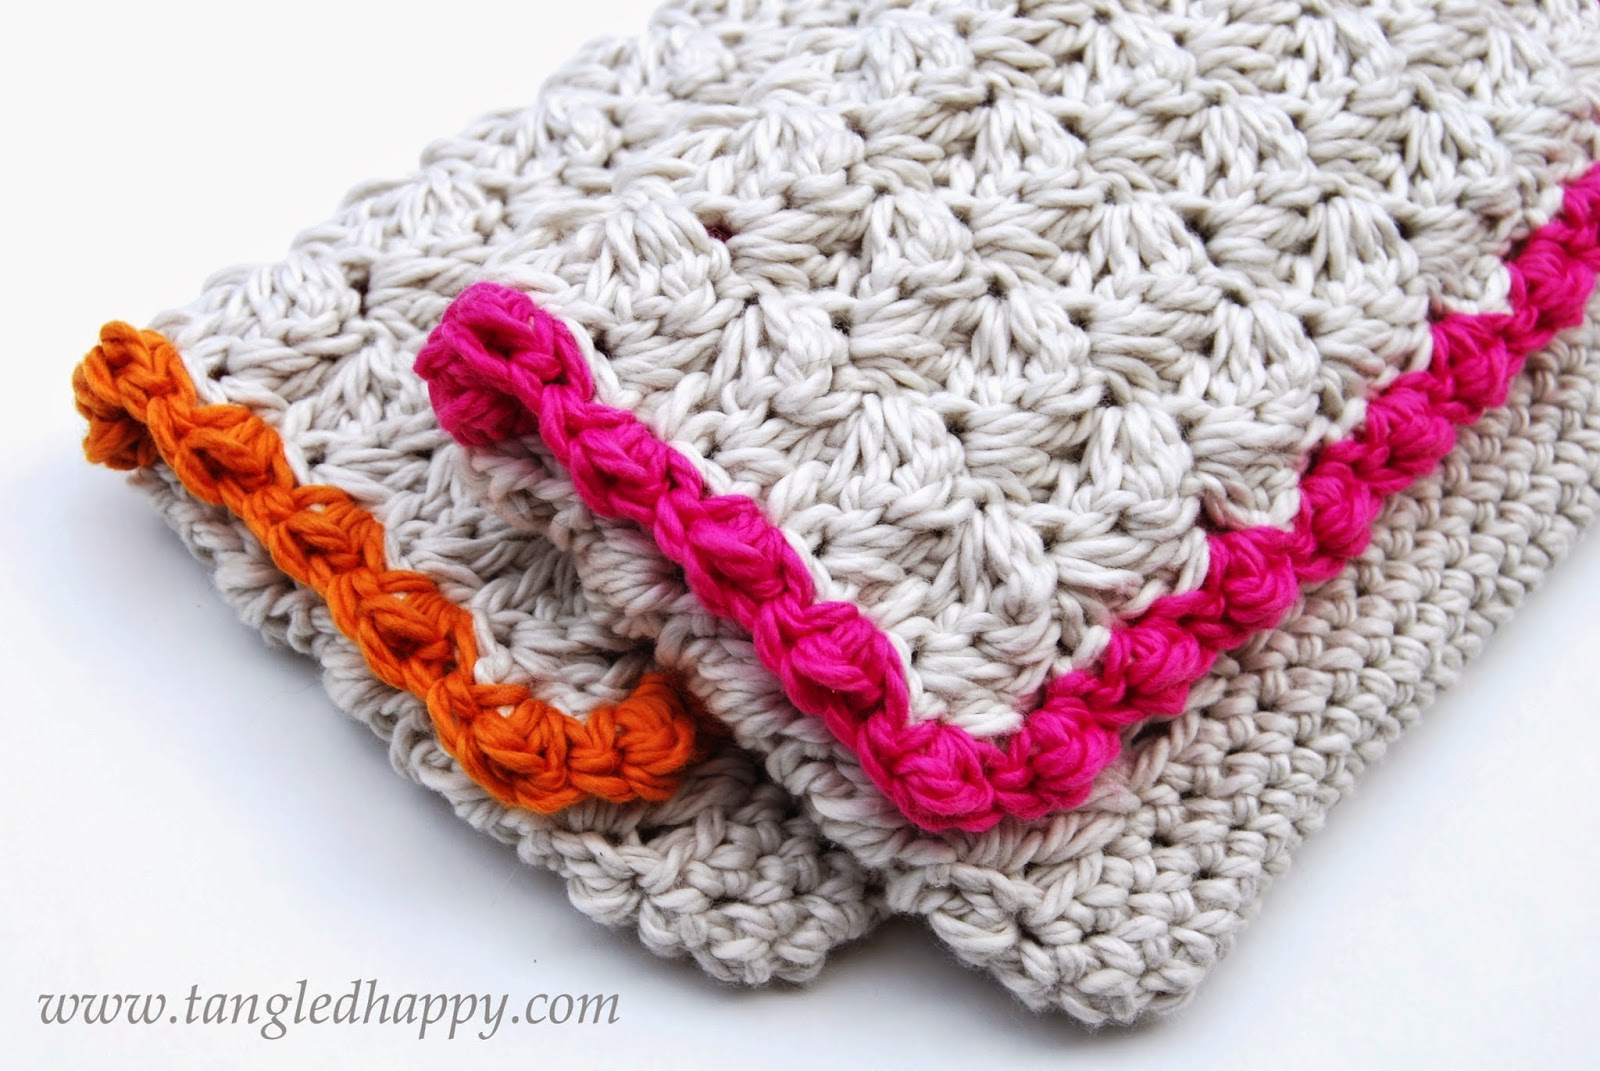 Free Crochet Clutch Pattern : ... happy: DIY Anthropologie Inspired Summer Clutch {Free Crochet Pattern